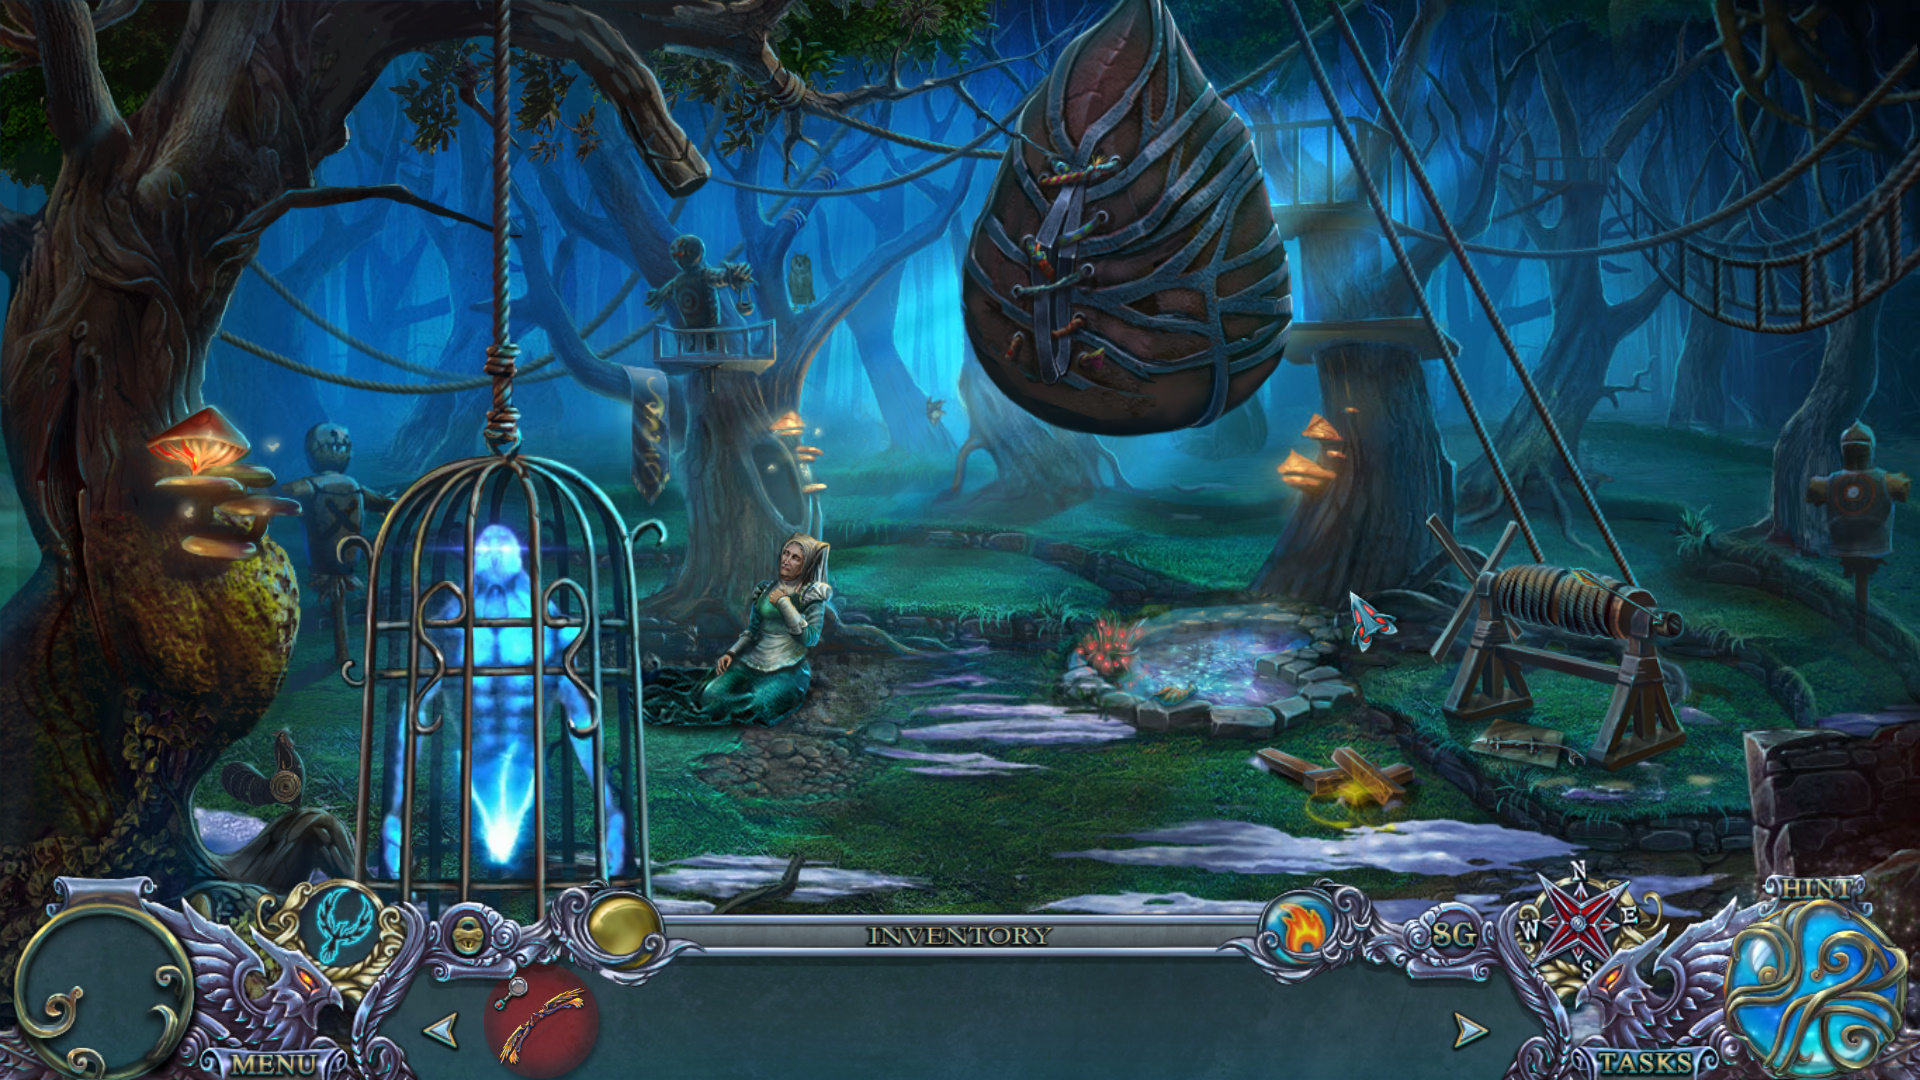 Spirits of Mystery 8: Illusions Collector's Edition (2017/PC/Английский), Unofficial